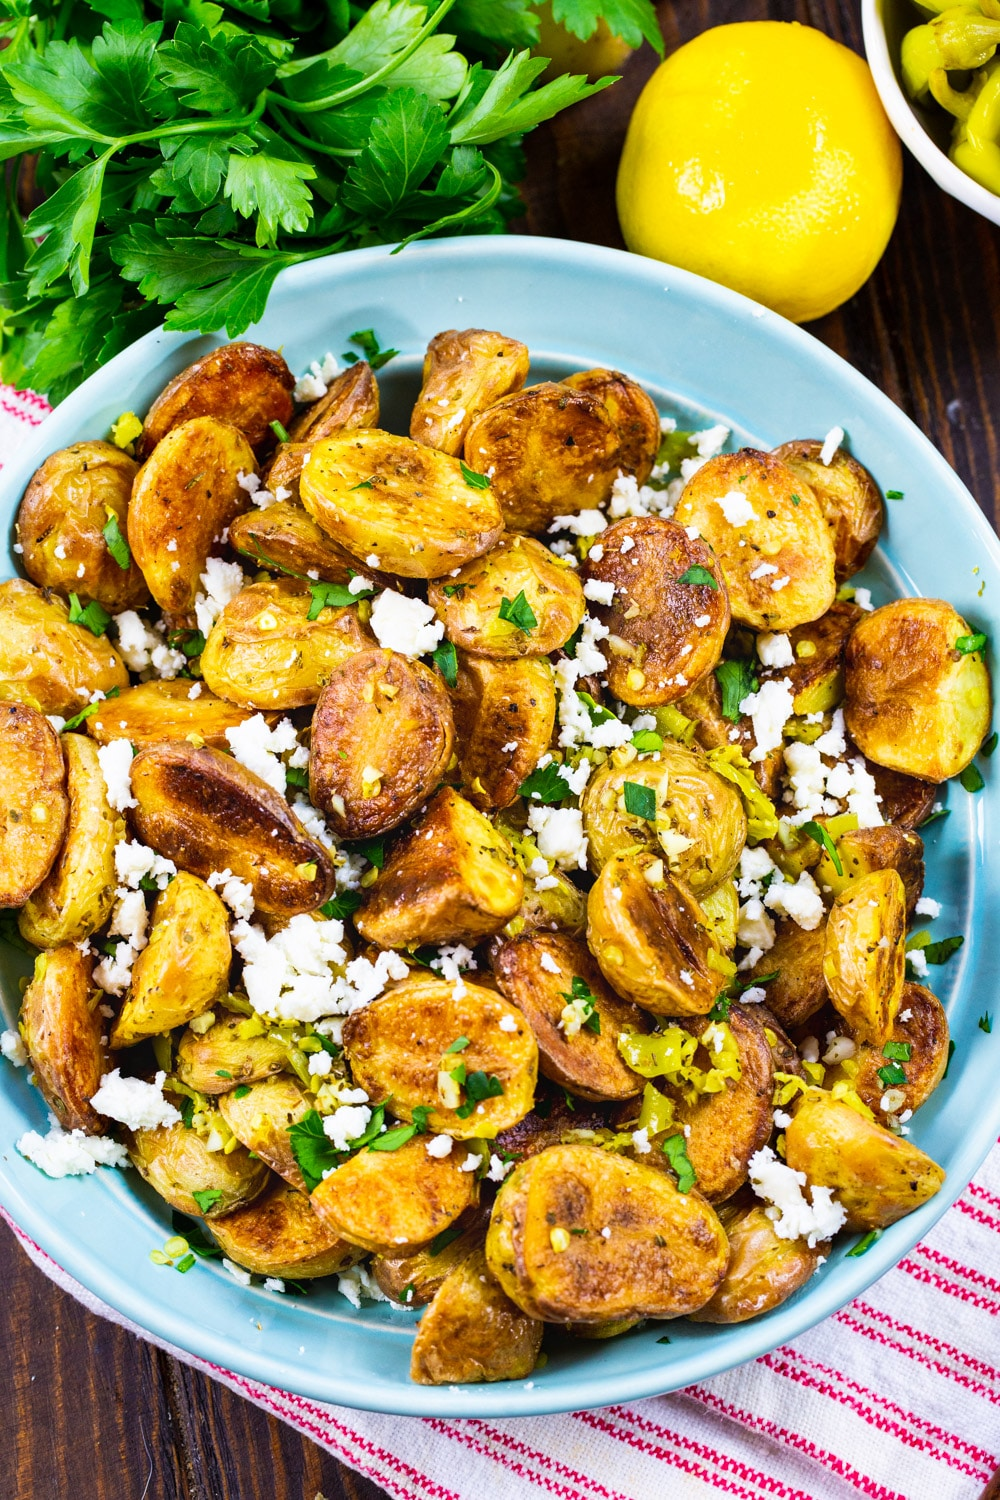 Greek Potatoes in a bowl surrounded by parsley and lemons.